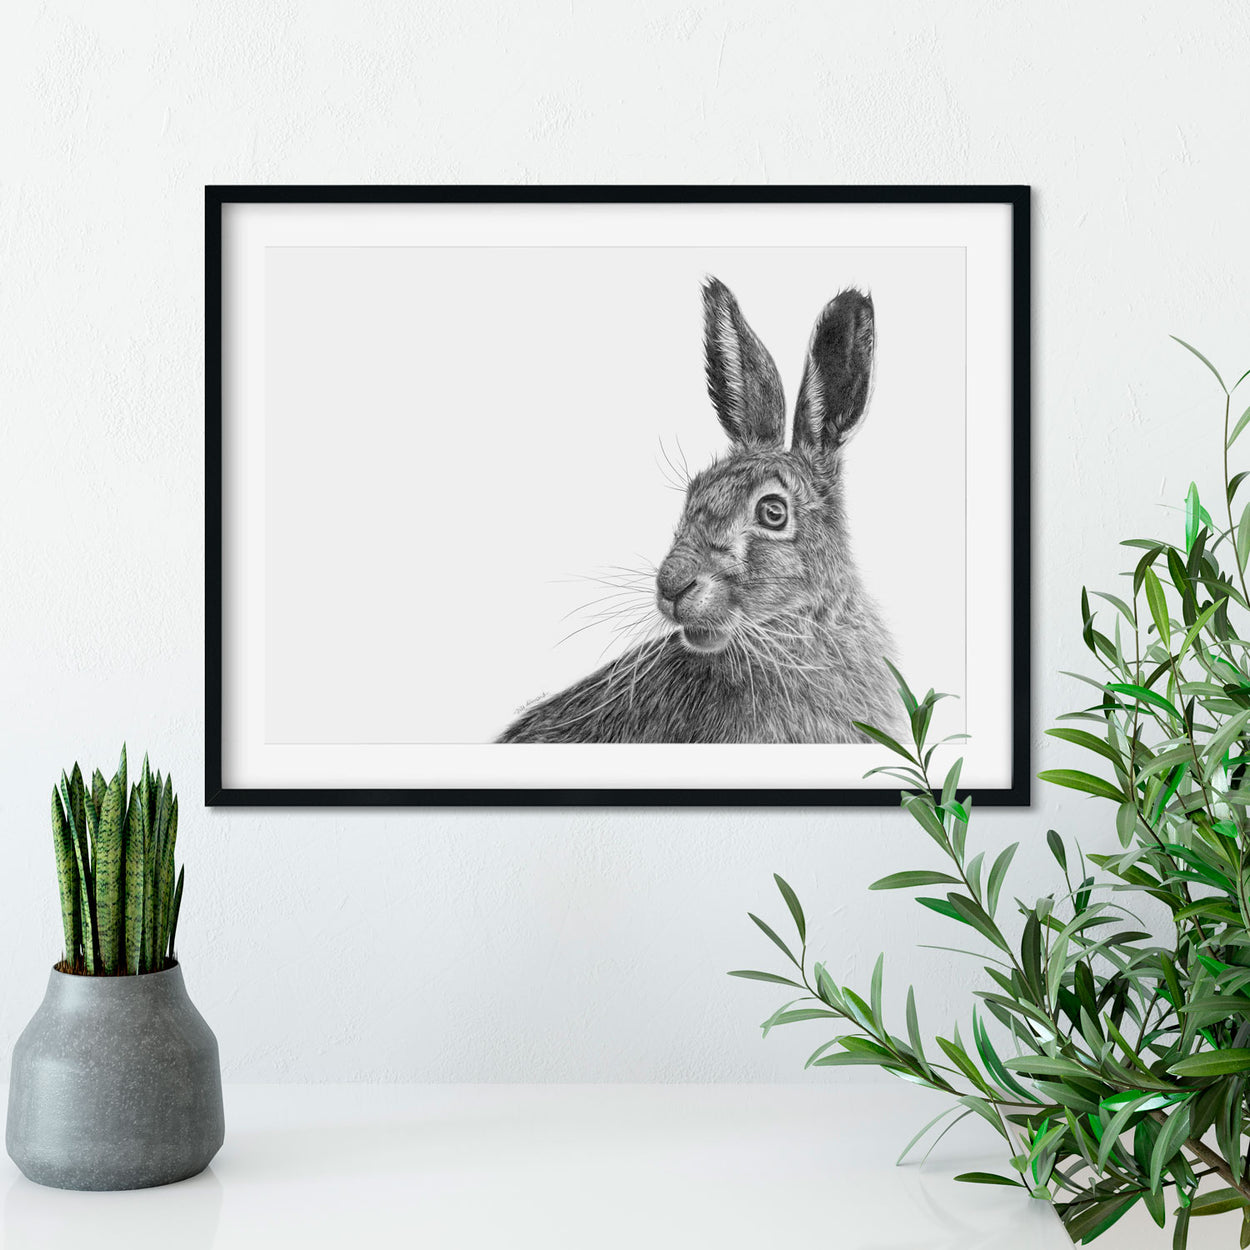 Original Hare Graphite Drawing on Wall - The Thriving Wild